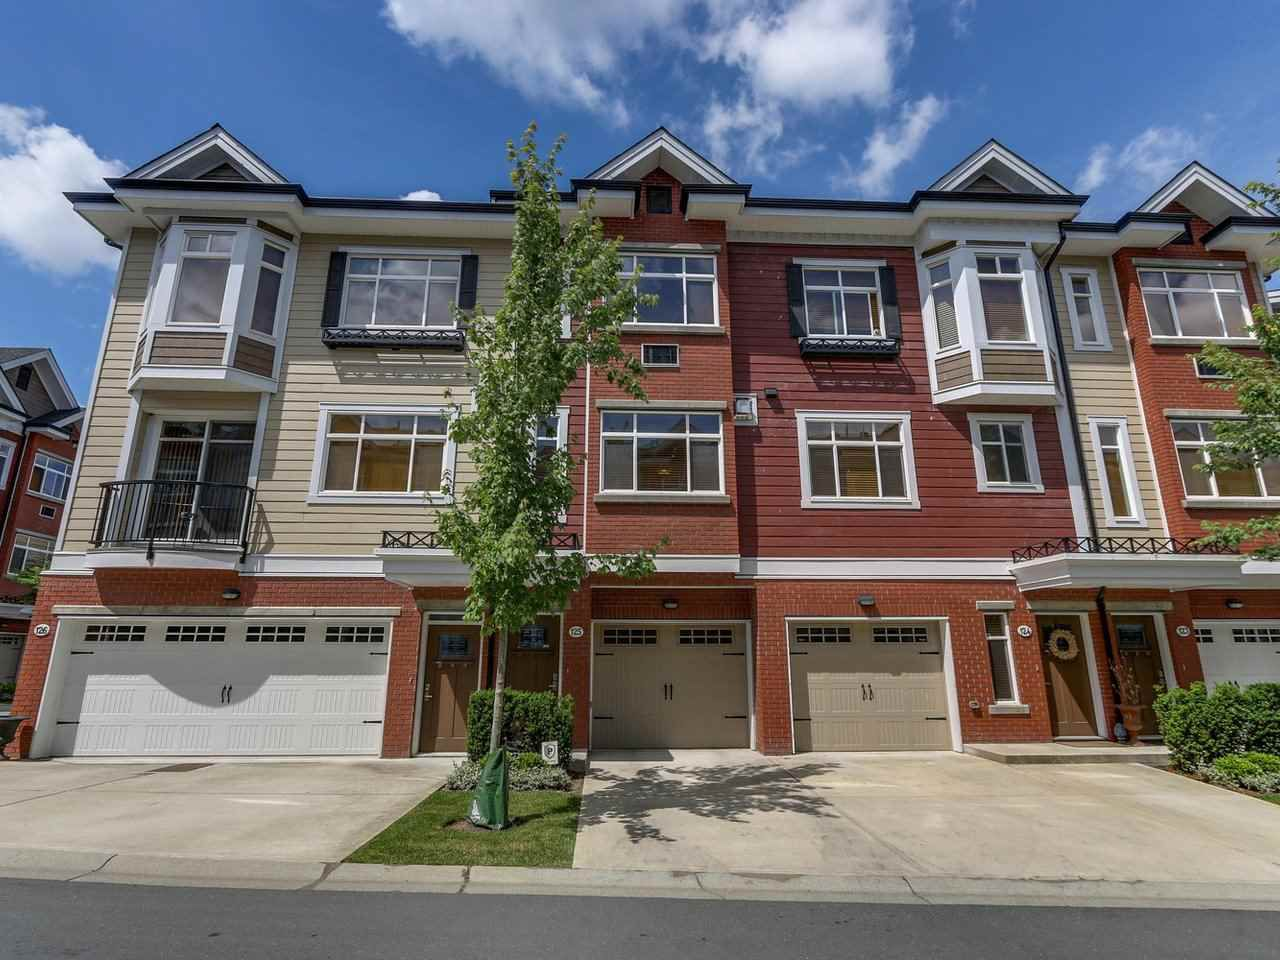 Main Photo: 125 8068 207 Street in Langley: Willoughby Heights Townhouse for sale : MLS®# R2284181